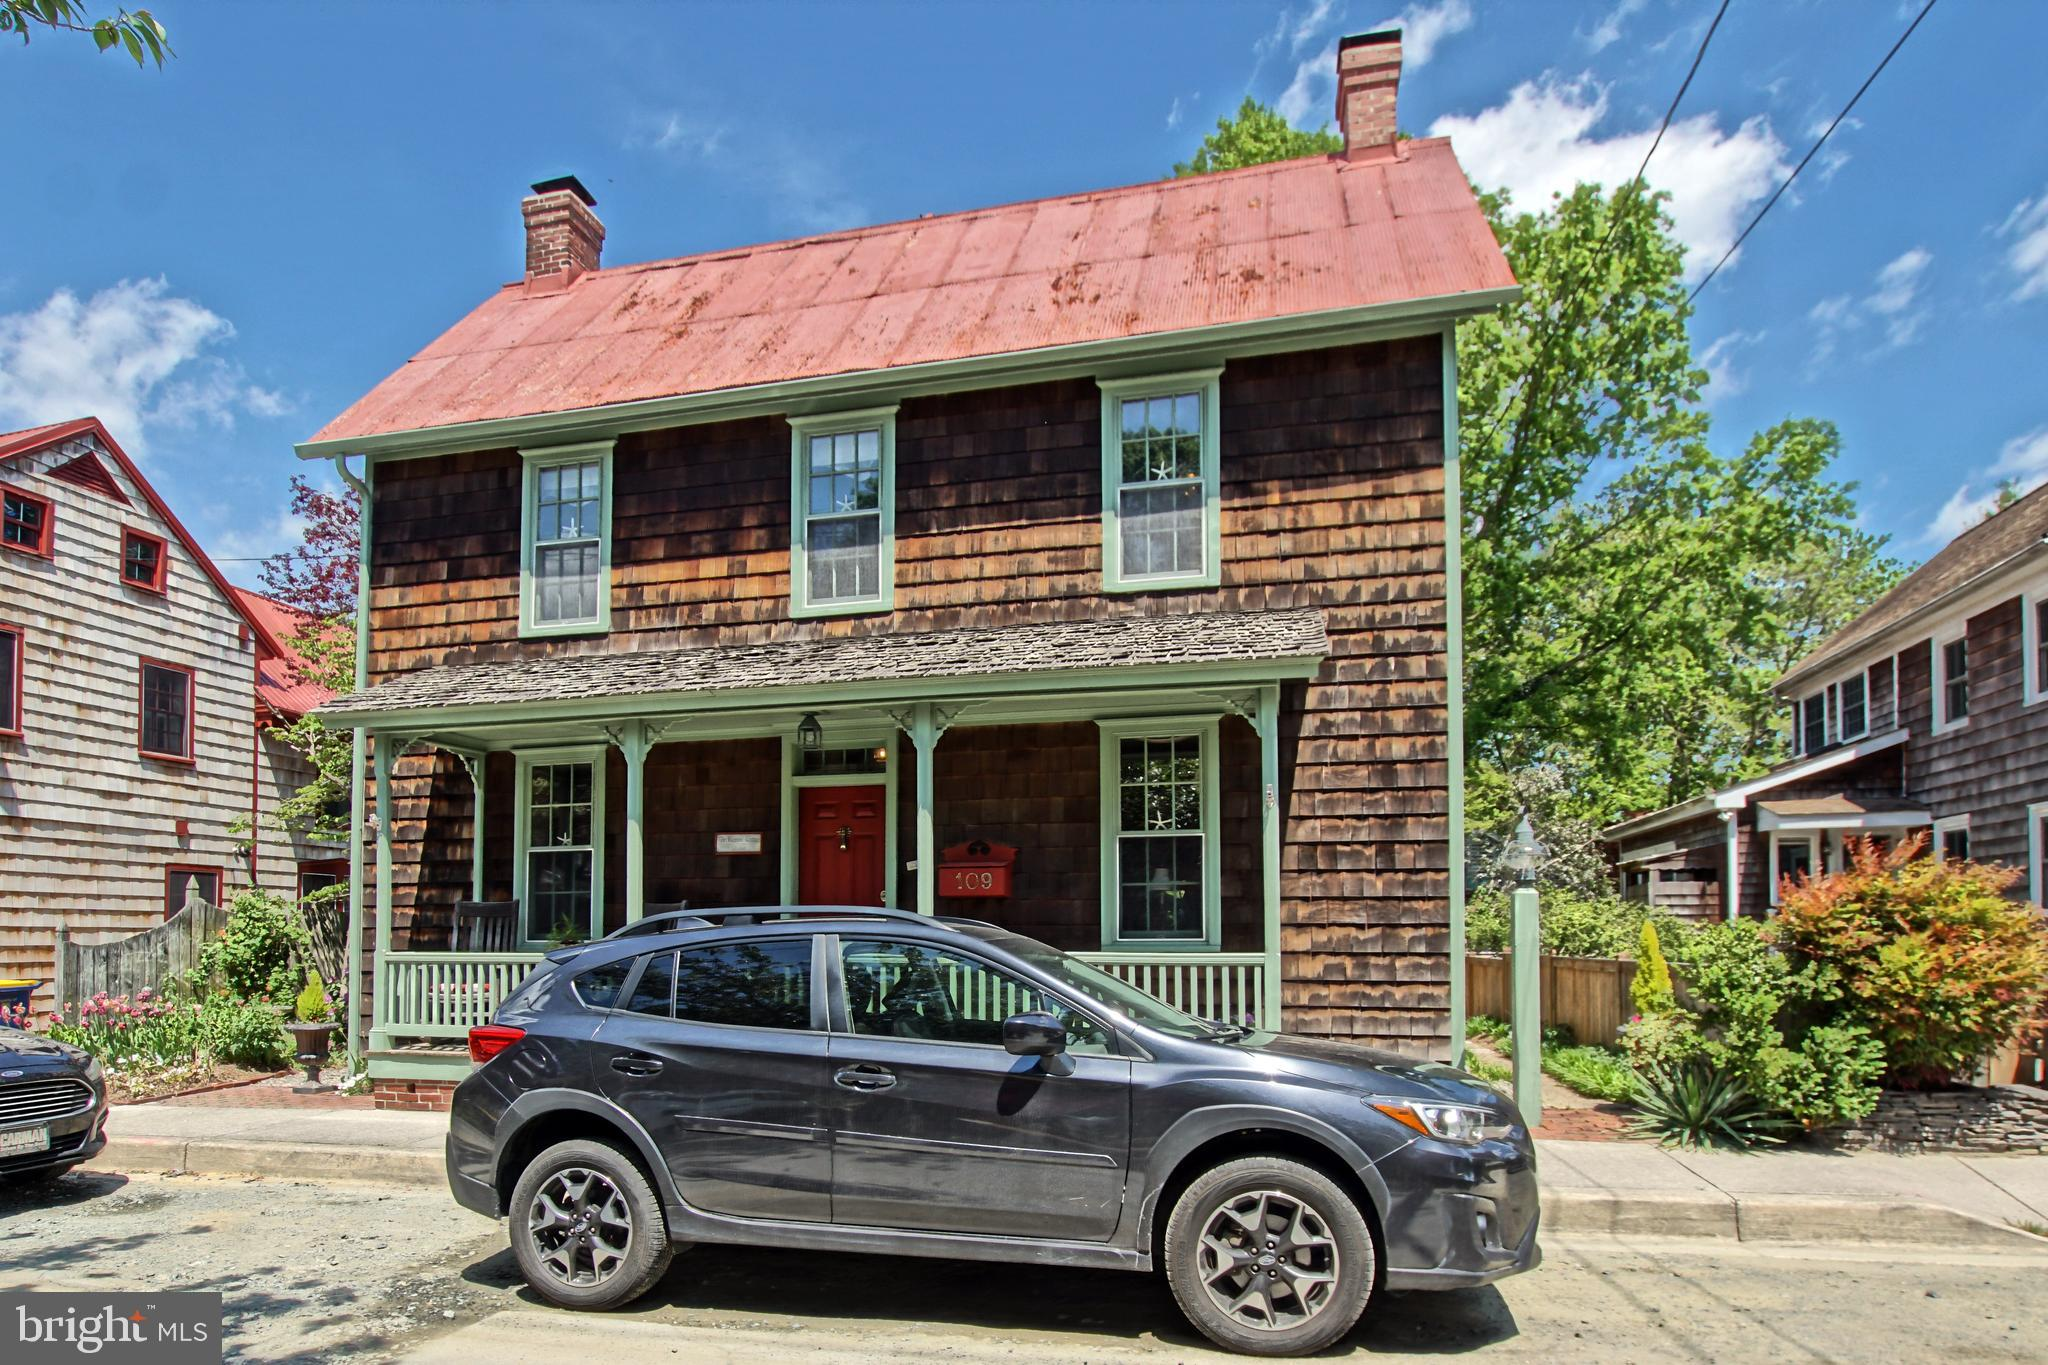 CHARM, CRAFTSMANSHIP, LOCATION! Conveniently located in Historic Lewes within walking distance of shops, restaurants and beach. Built in 1882, retains antique charm while being totally updated. First-rate craftsmanship throughout. Beautifully mature landscaping with 750 sqft carriage house.